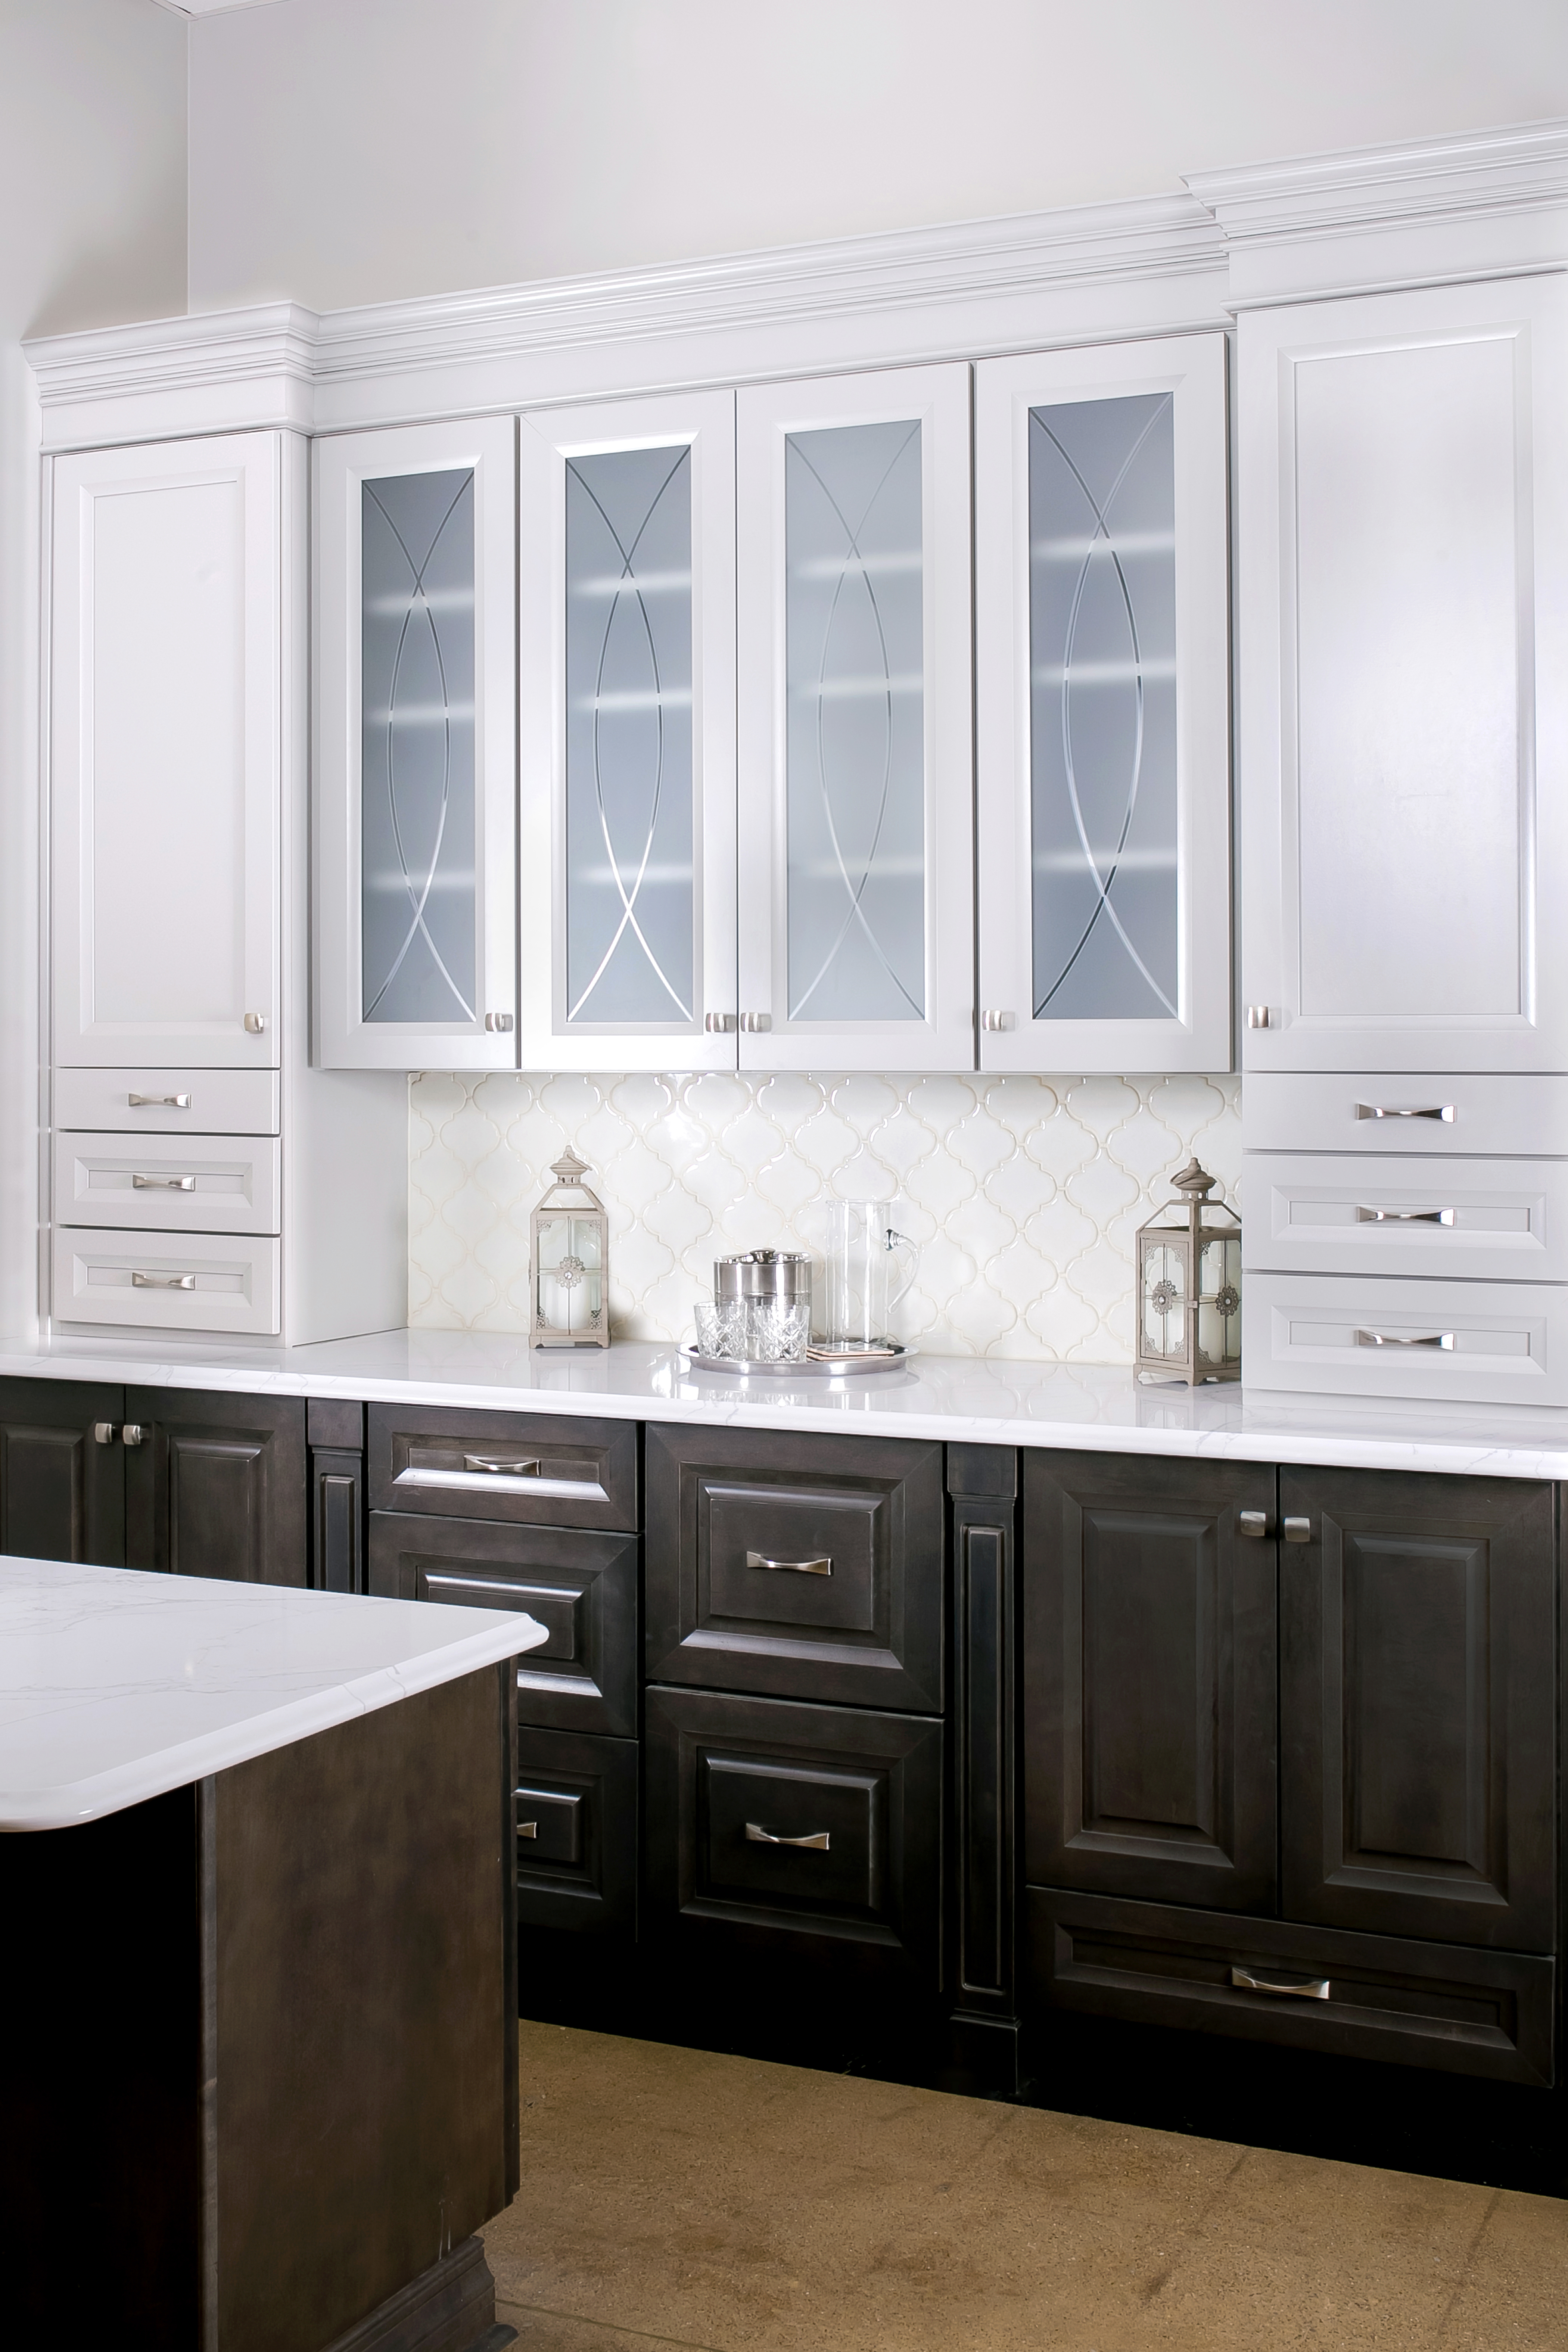 Kitchens - 84 Design Studios